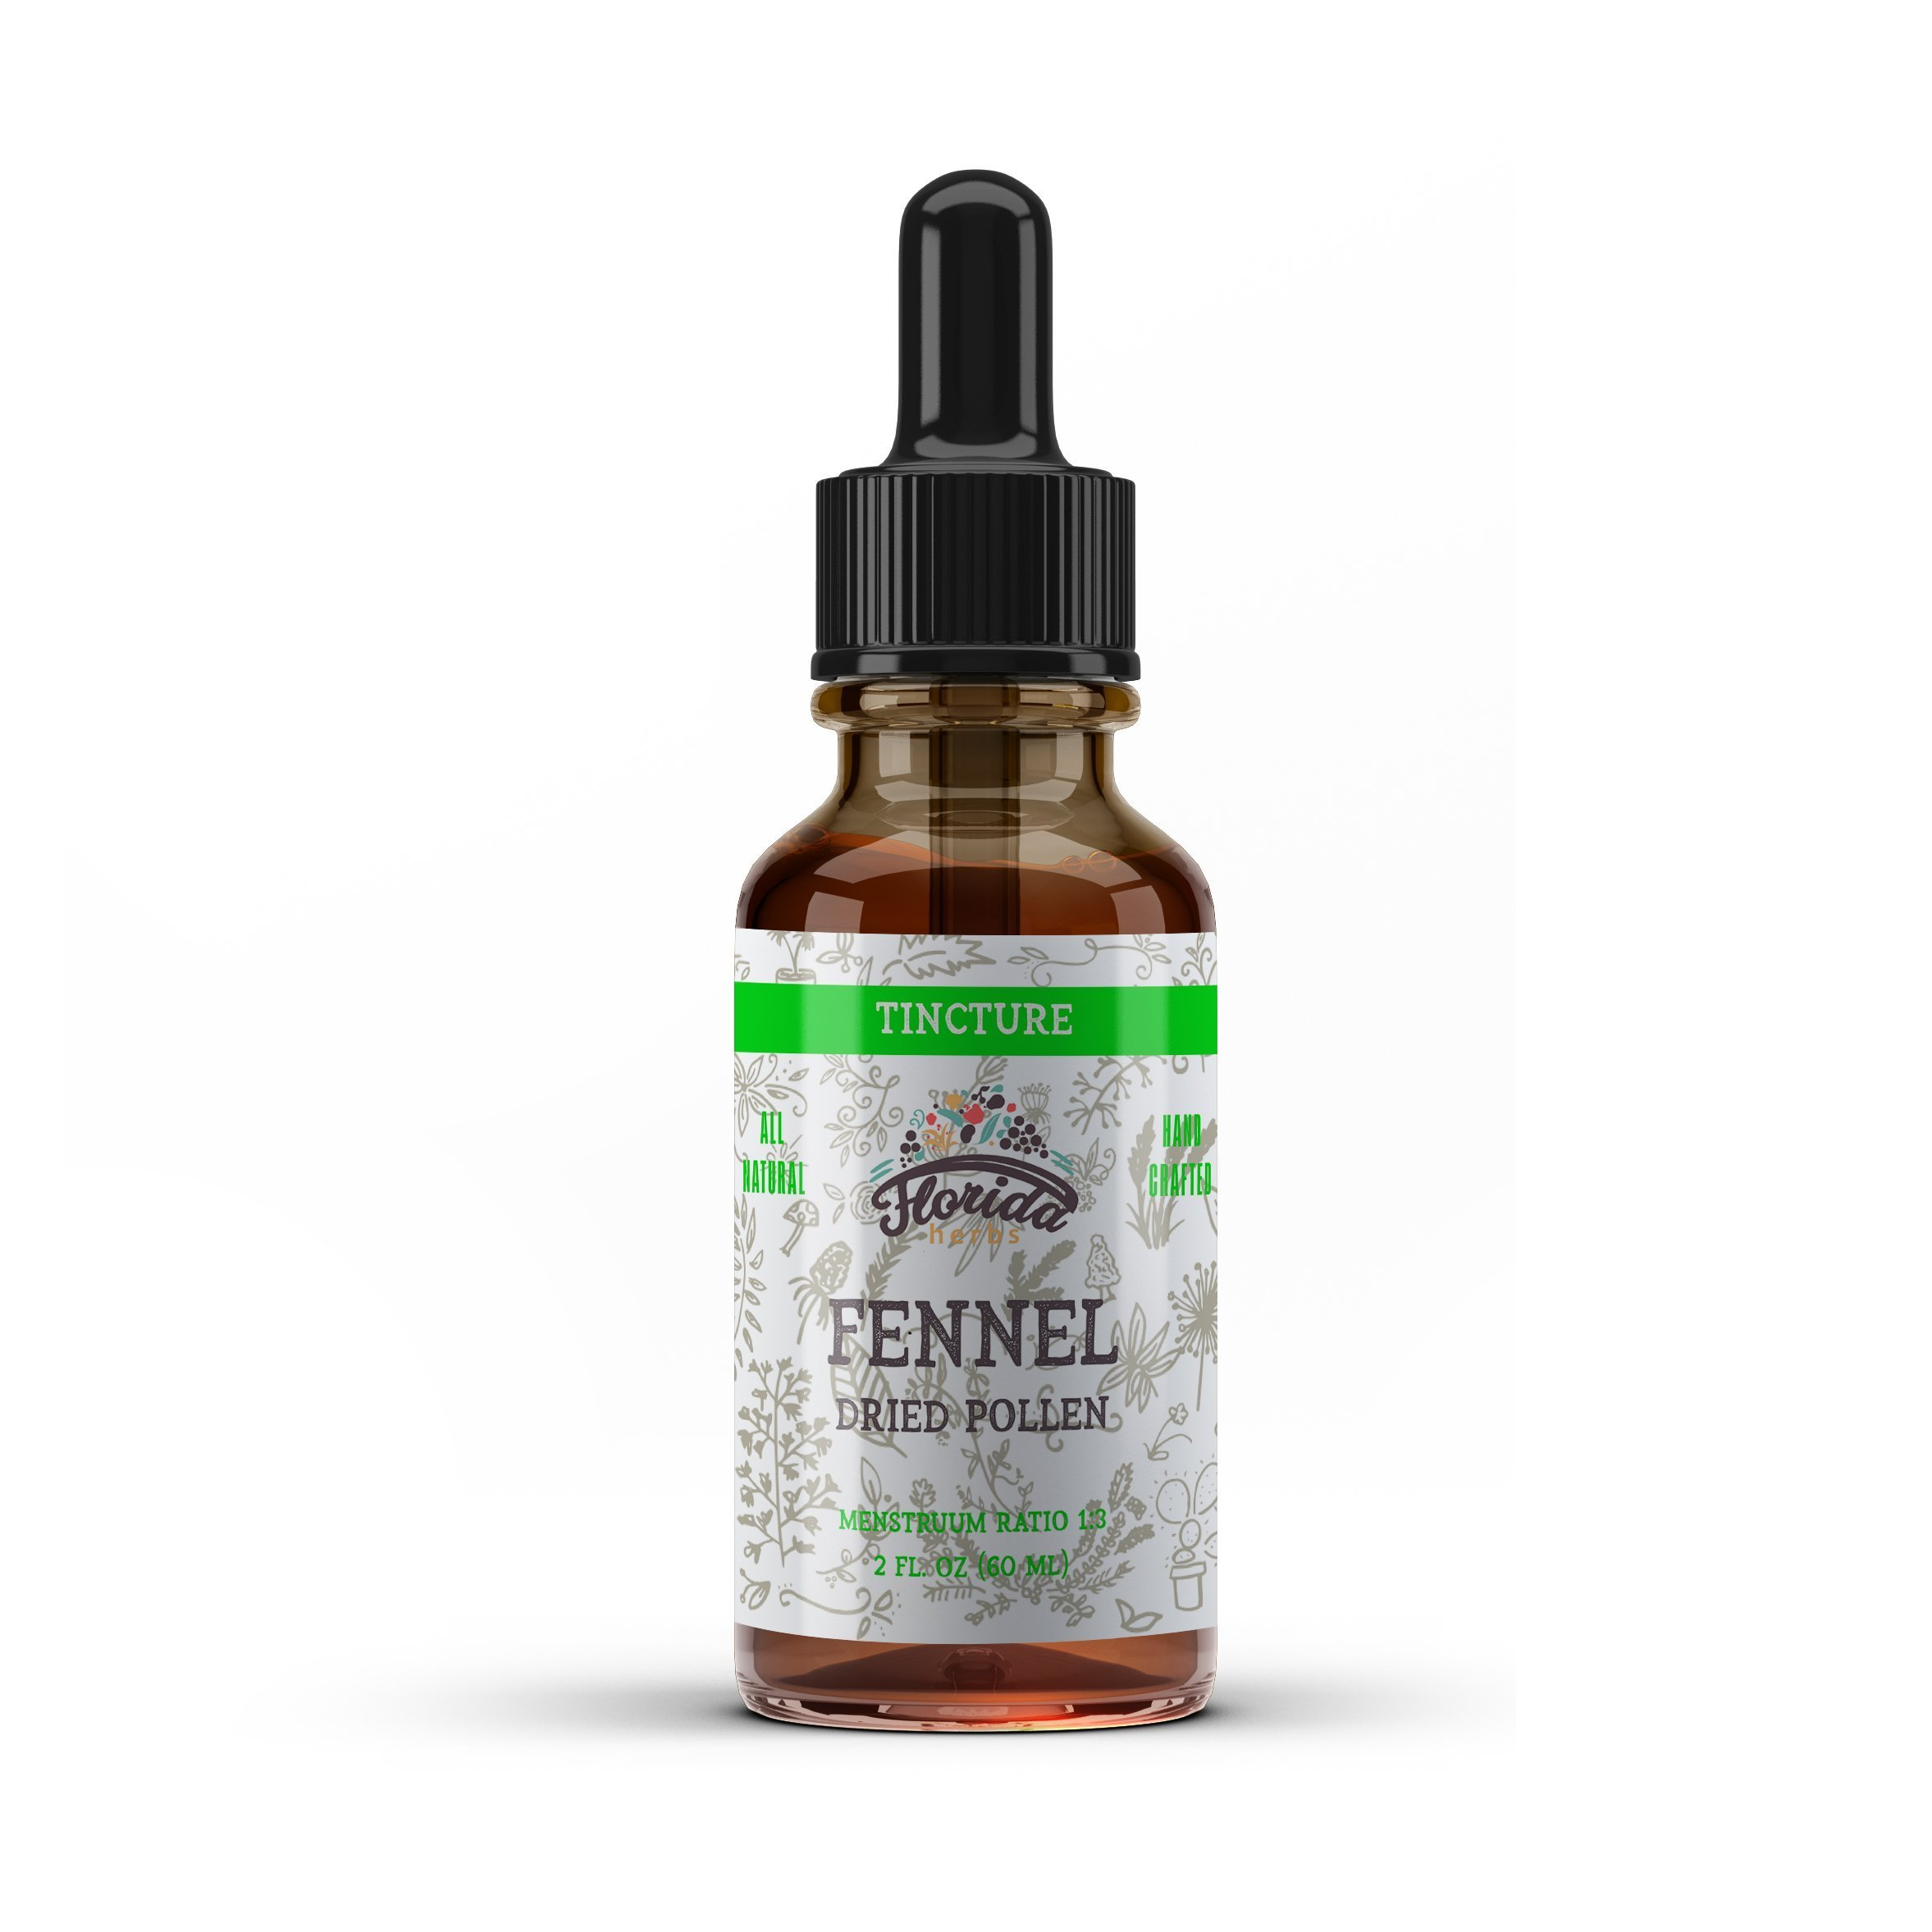 Fennel Seed Tincture, Organic Fennel Extract (Foeniculum vulgare) Dried Seed, Fennel Vitamin